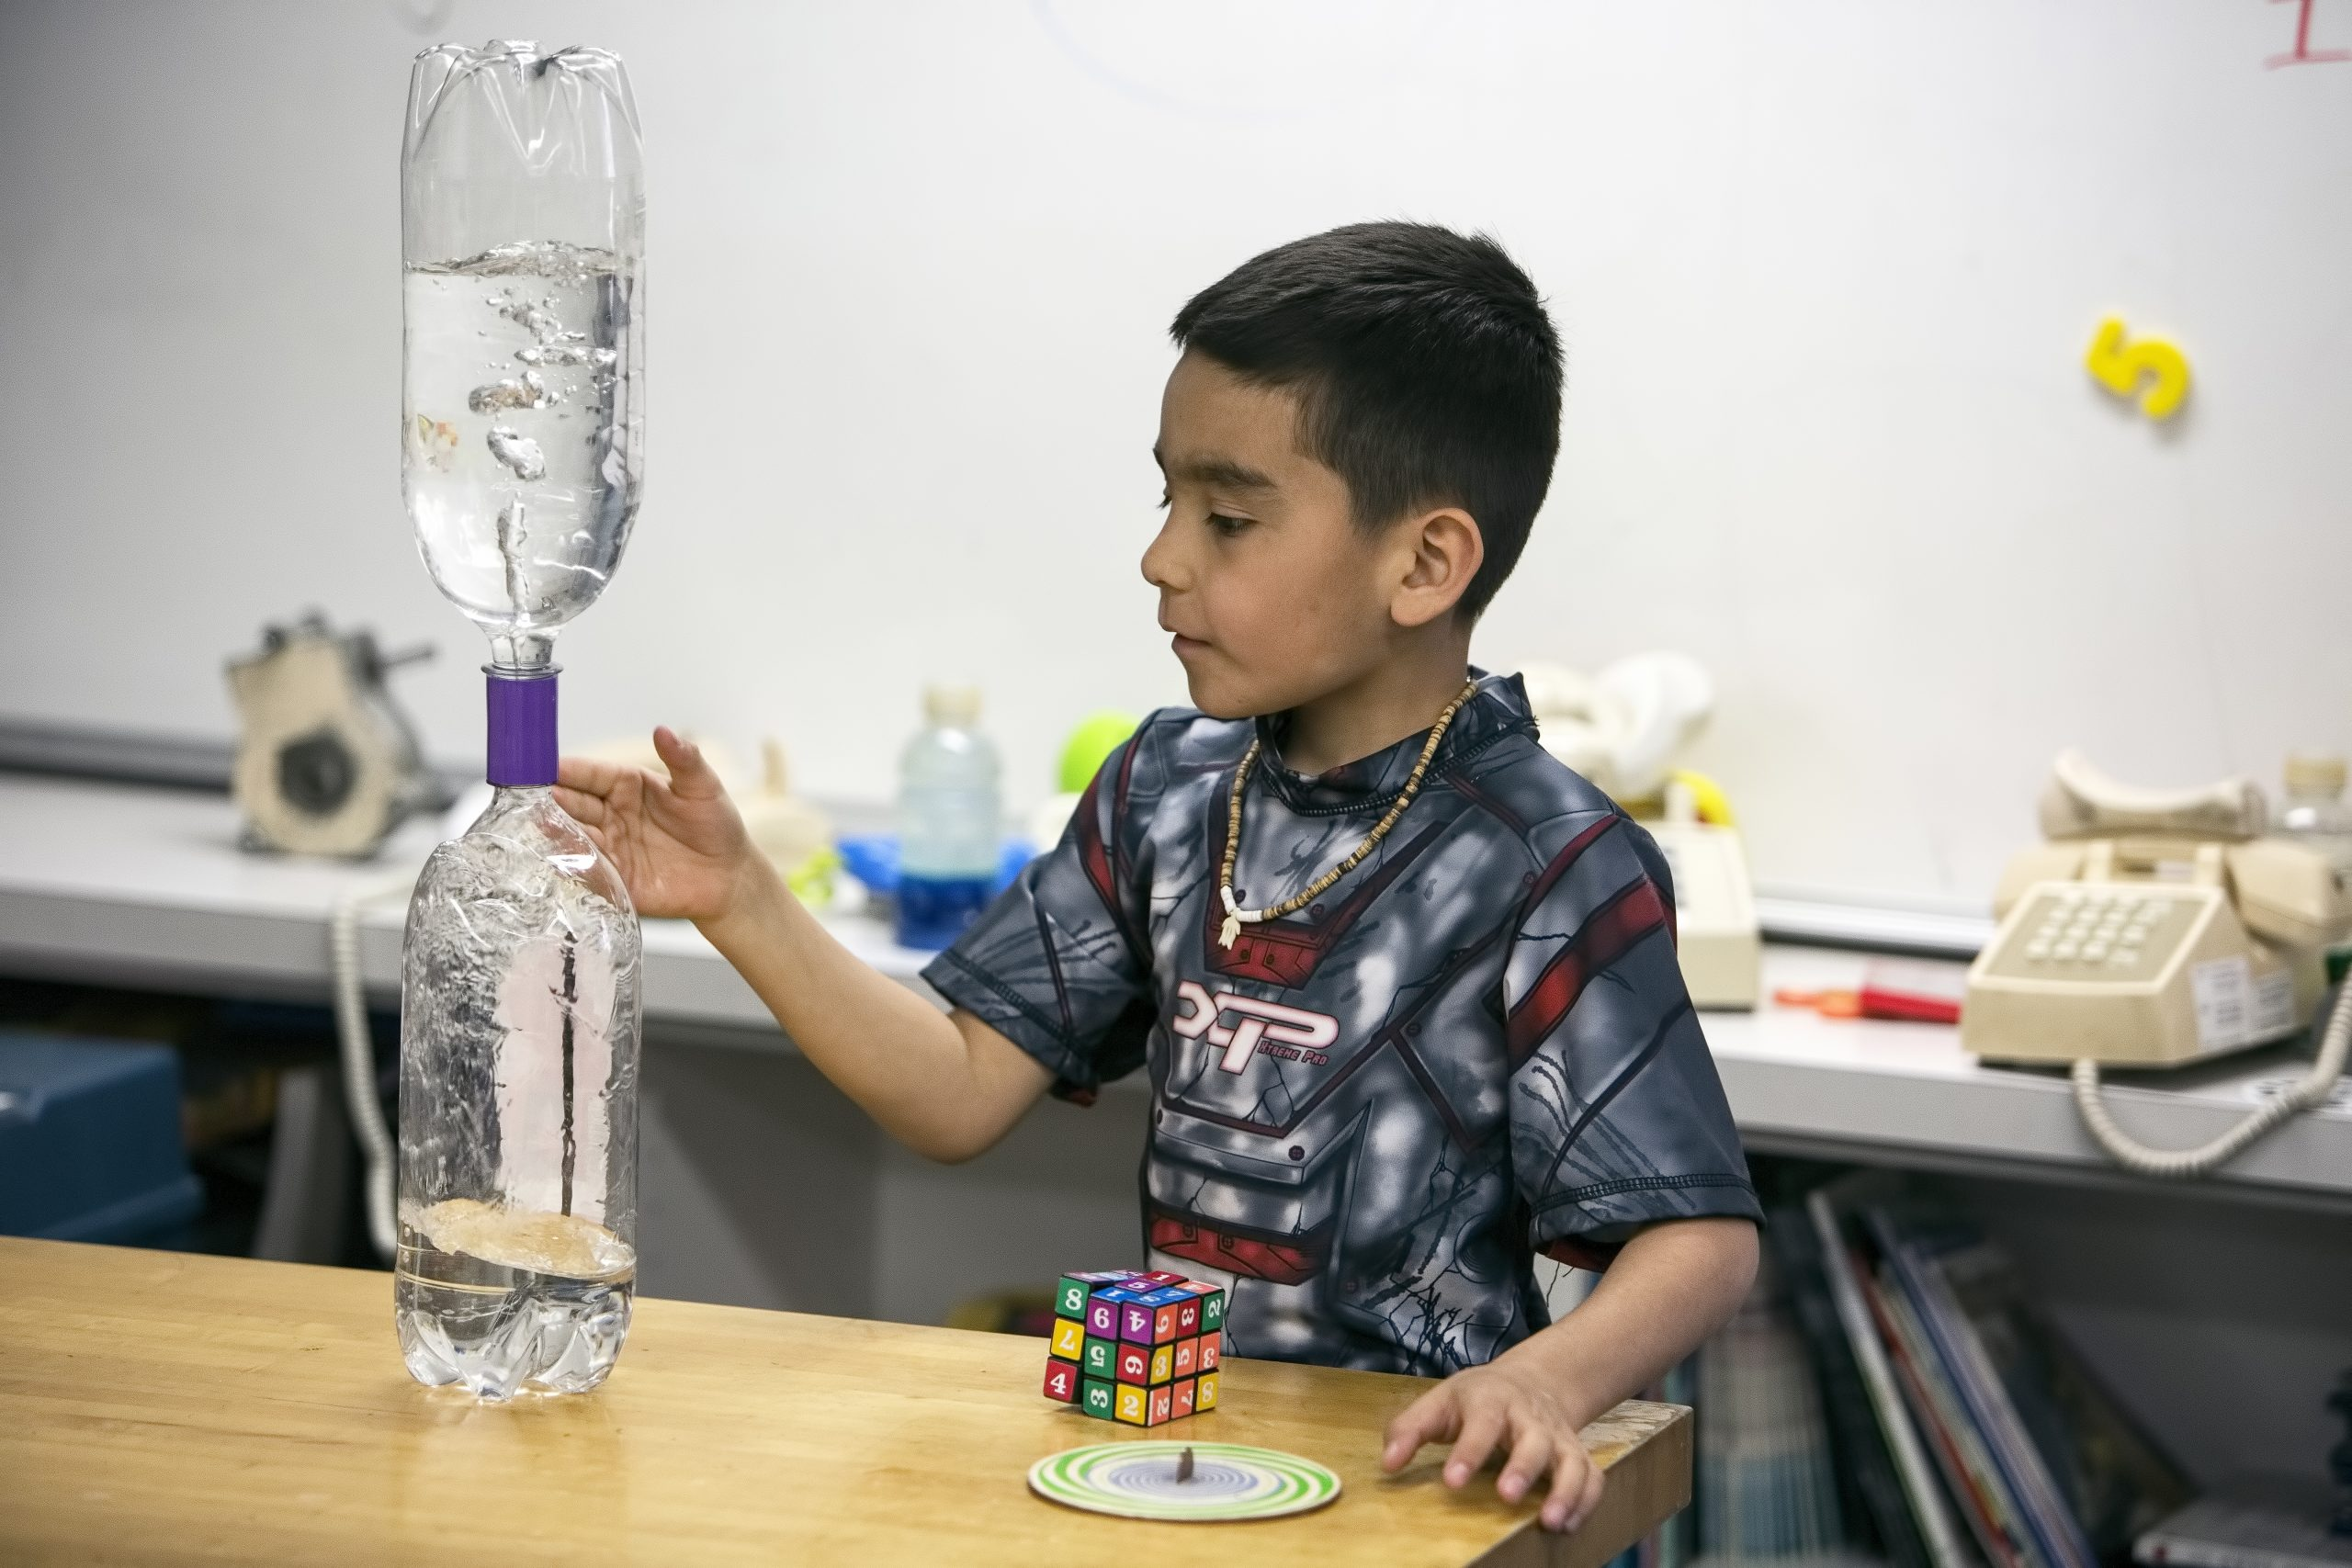 Male student experimenting with water bottle STEM project